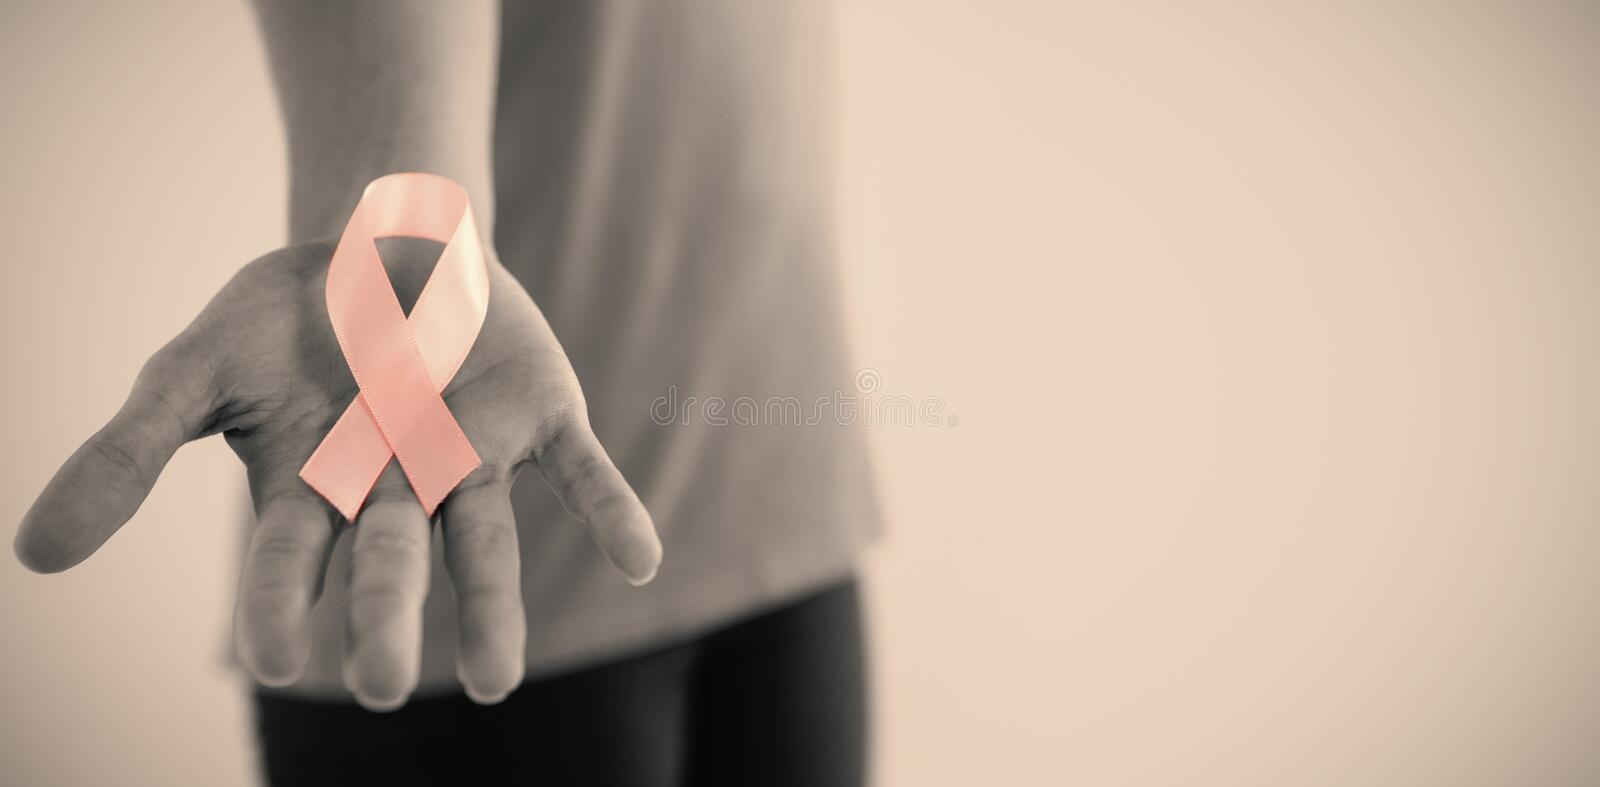 Mid section of woman holding pink breast cancer awareness ribbon. Against gray background royalty free stock image